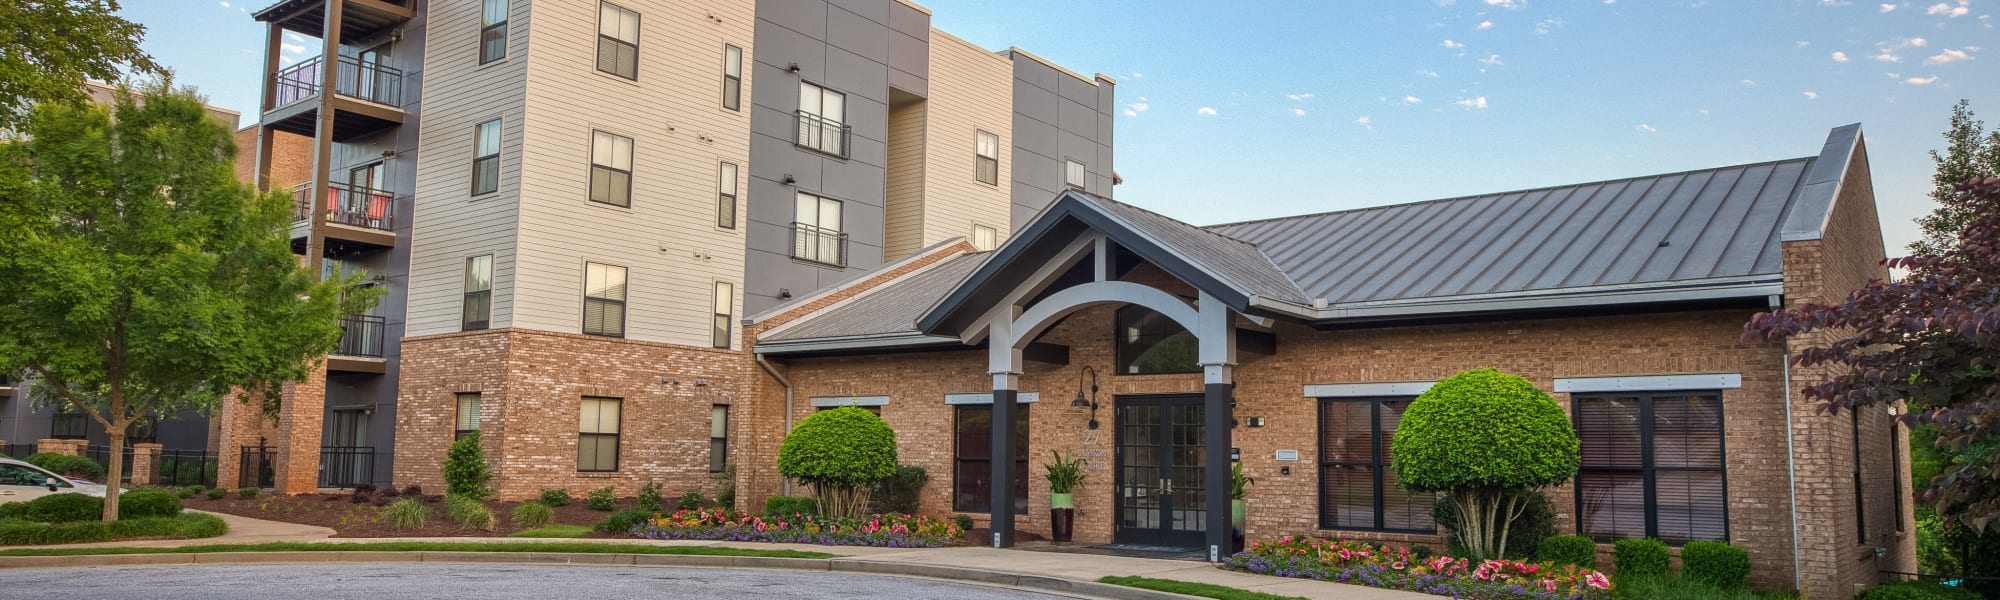 Schedule a tour at McBee Station in Greenville, South Carolina